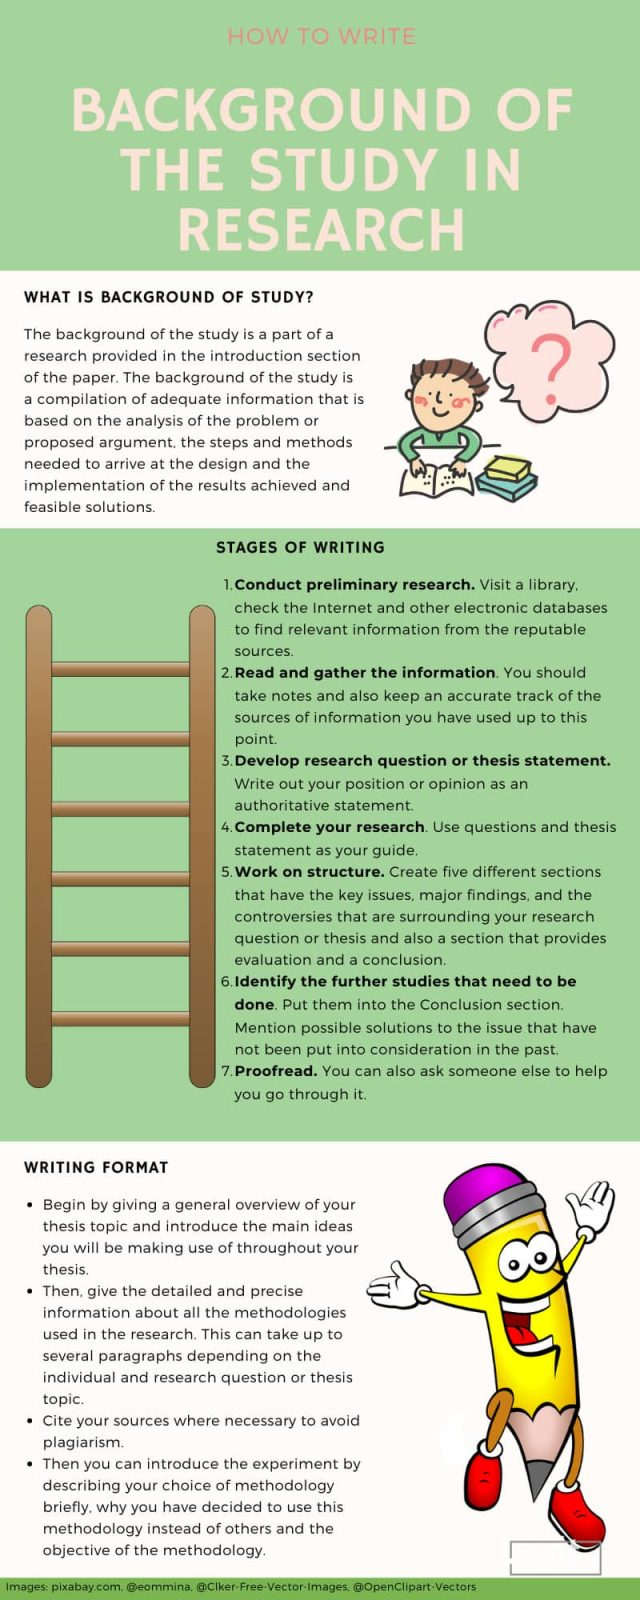 Background of the study in research: how to write one (18